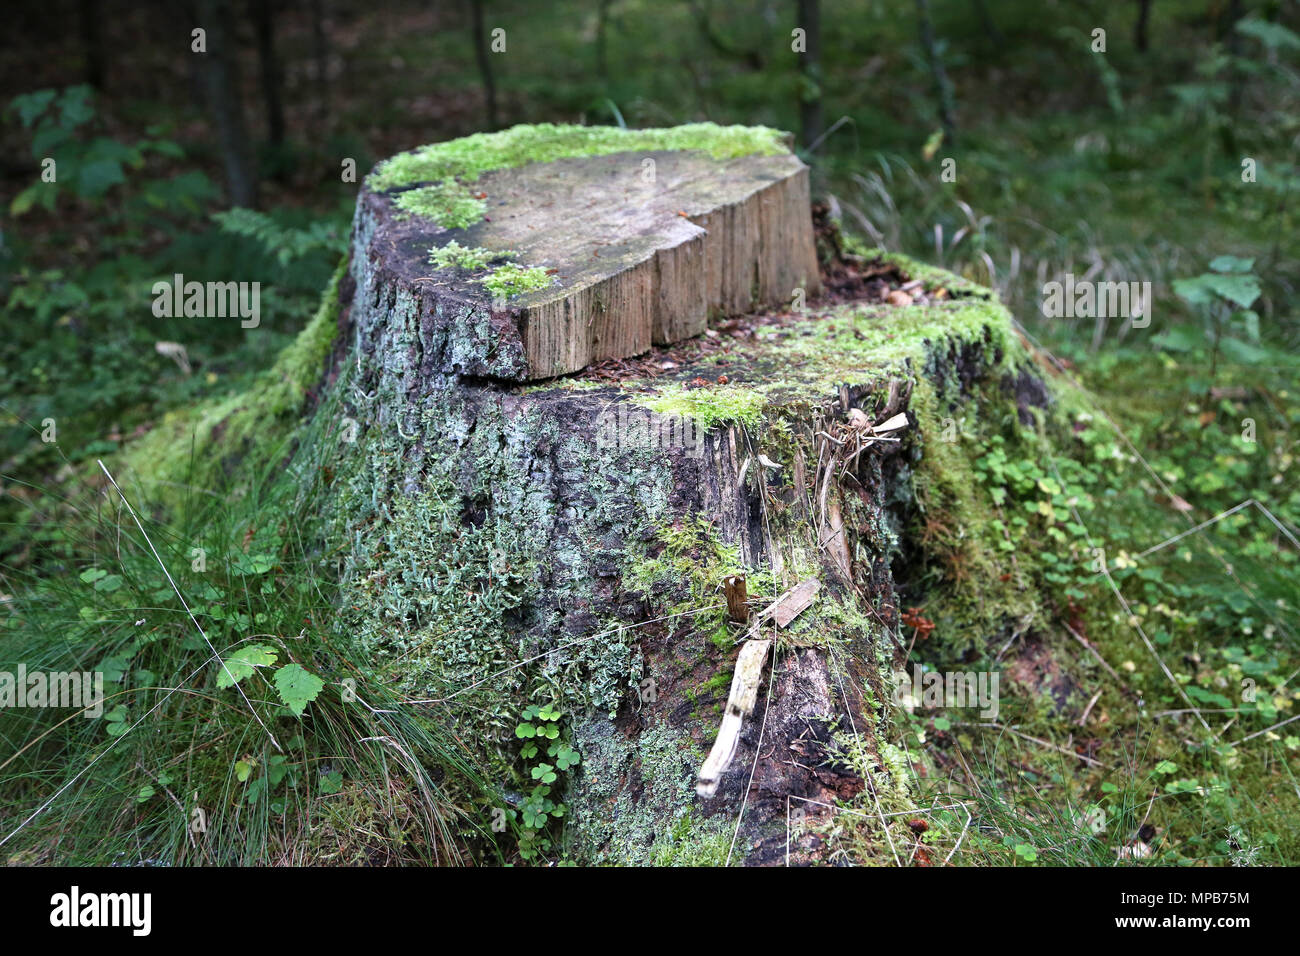 tree trunk with vegetation - Stock Image